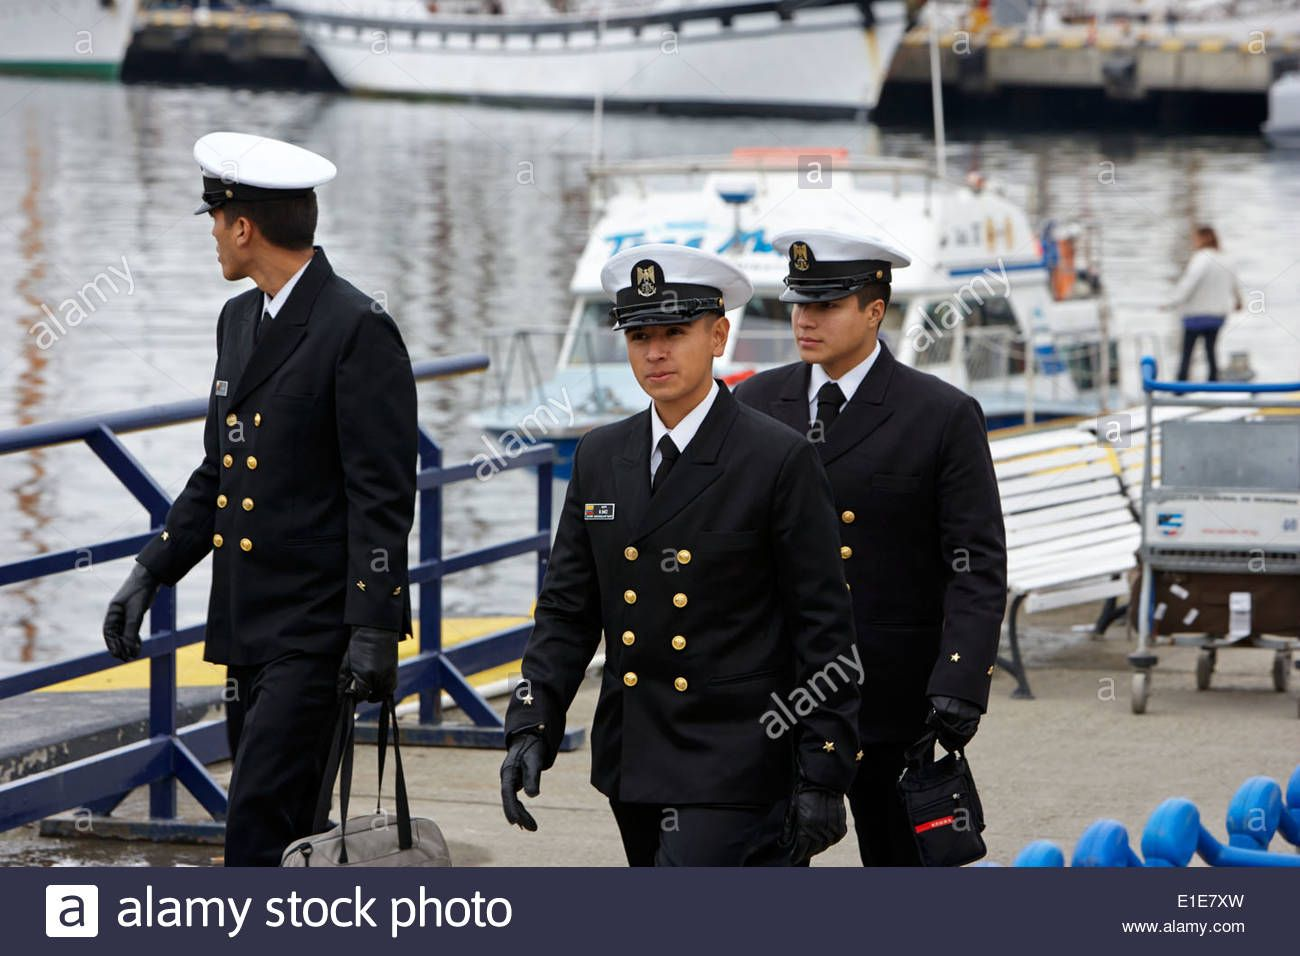 Download This Stock Image Colombian Navy Officer Cadets In Formal